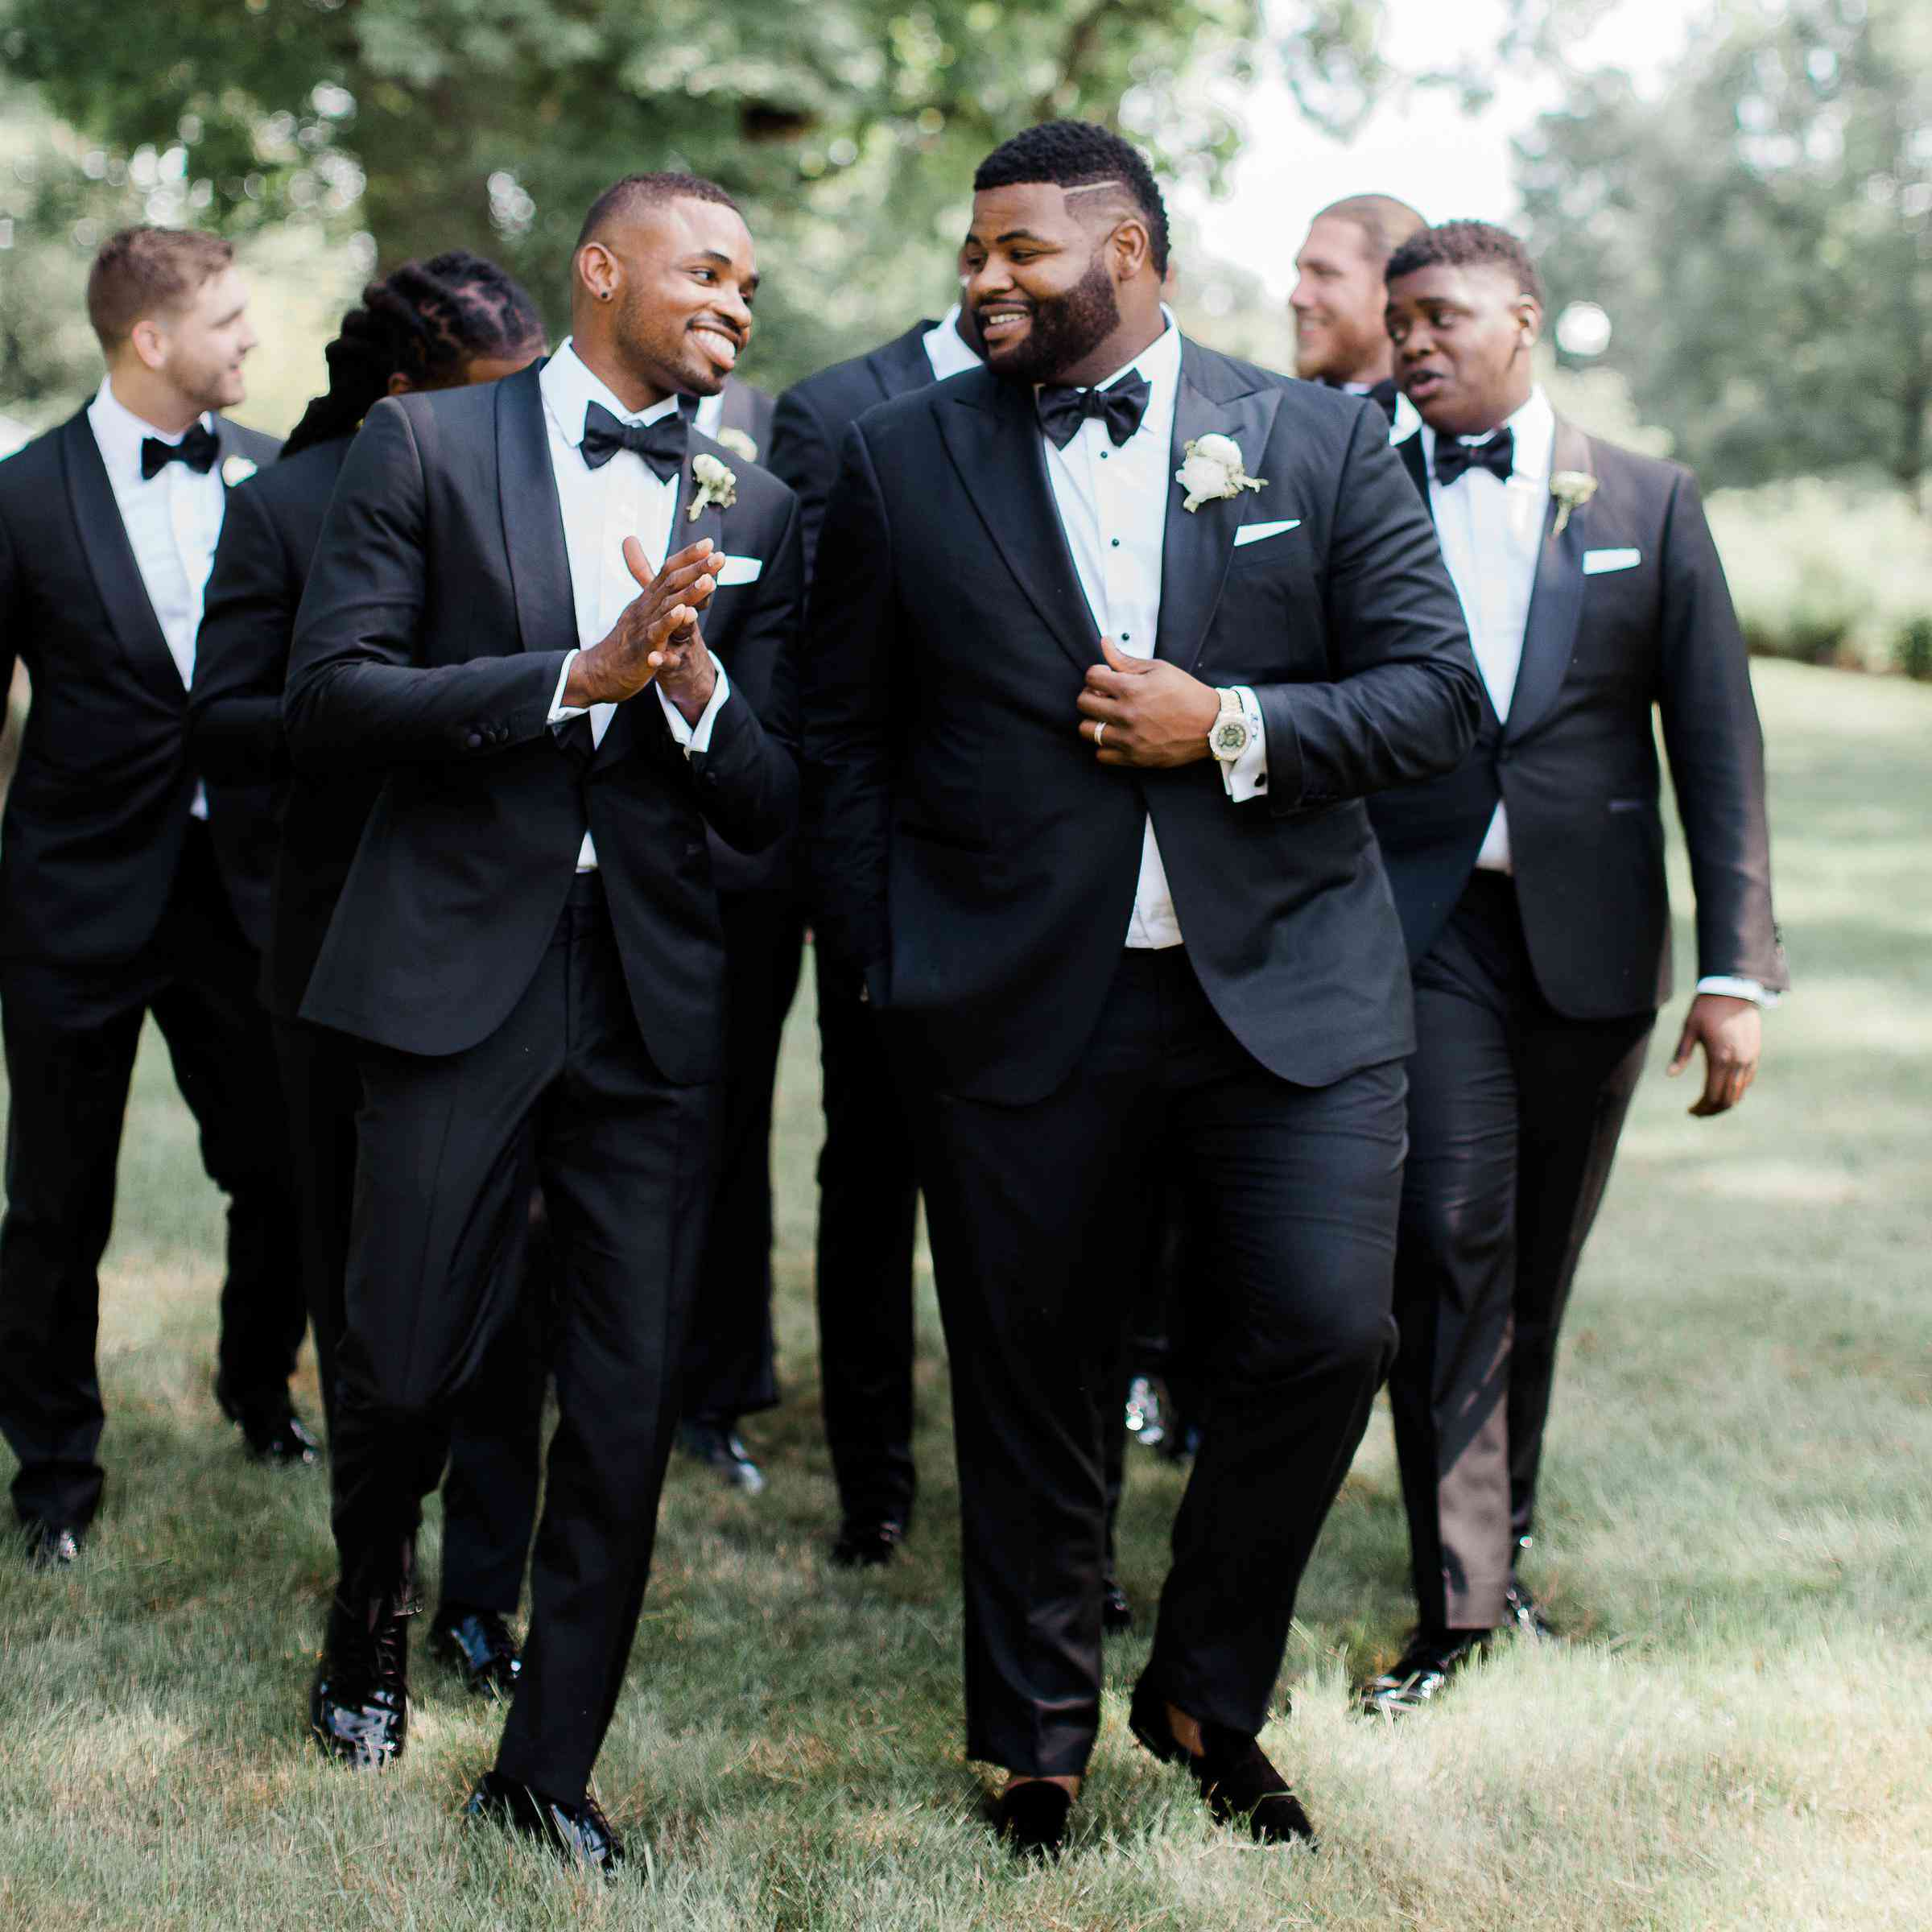 What Do Groomsmen Do The Morning Of The Wedding?